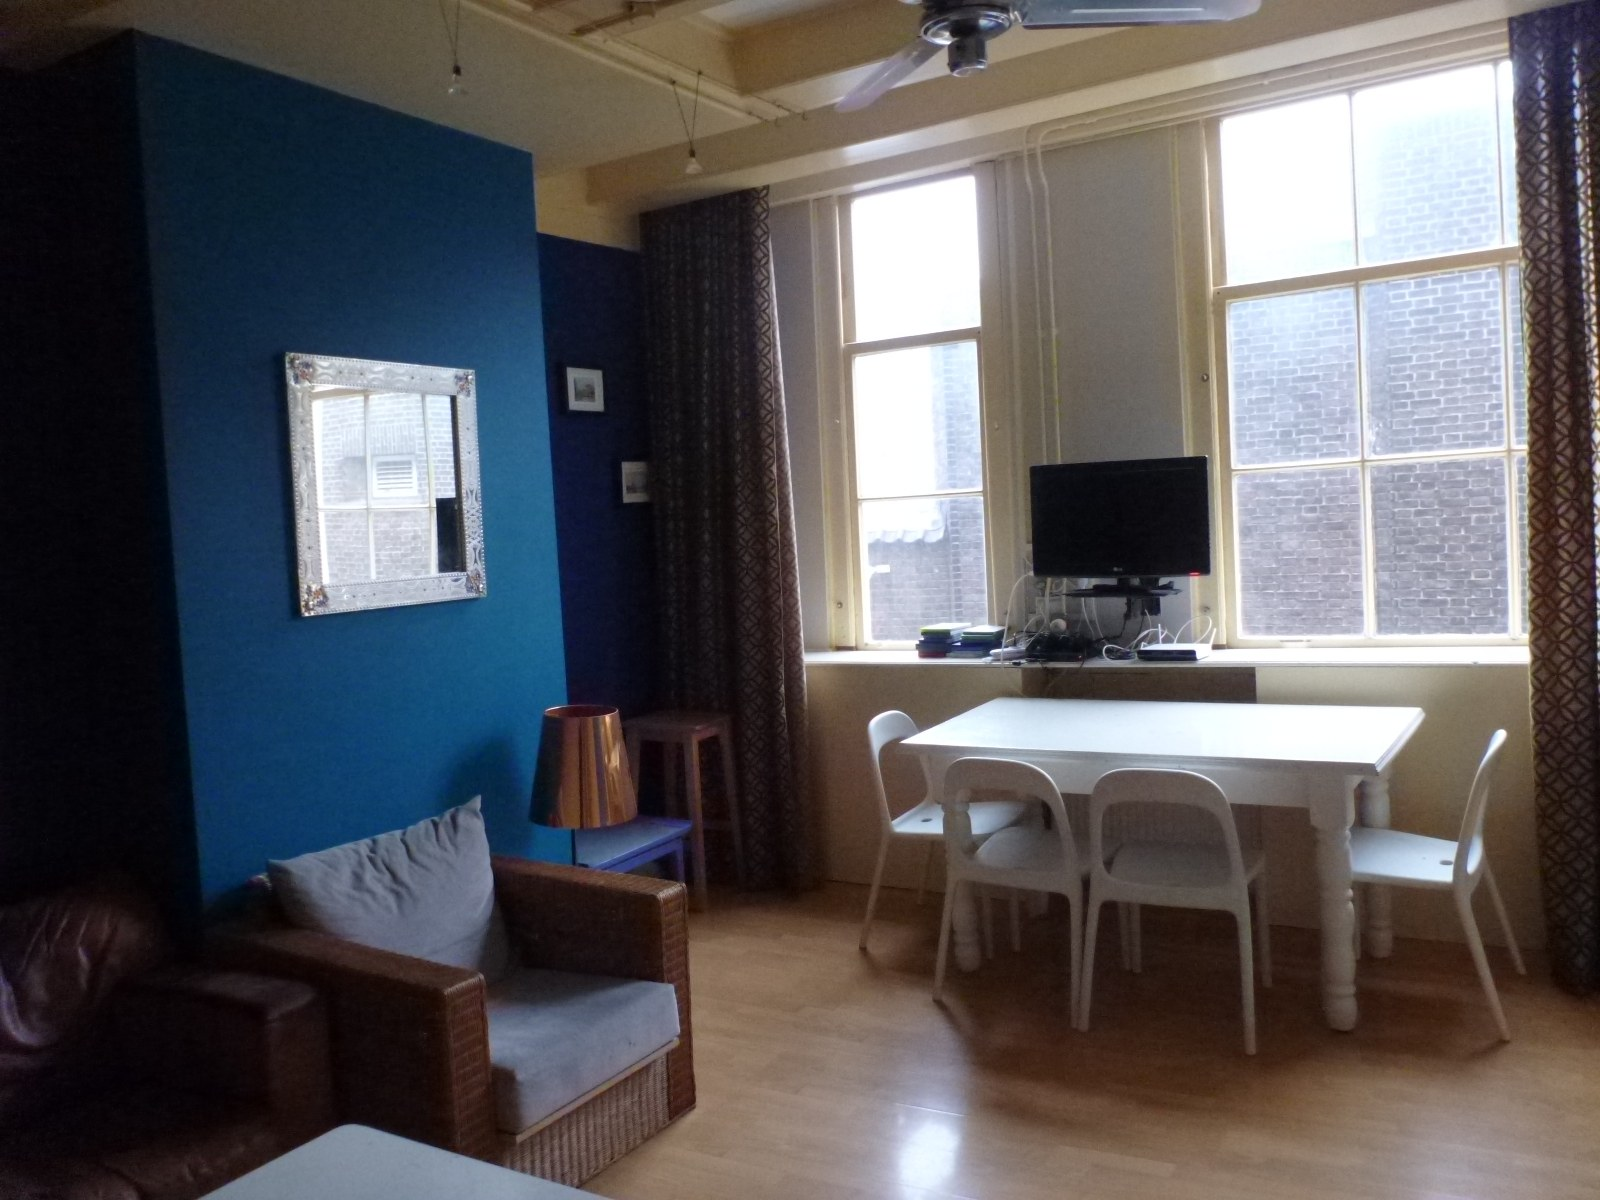 B&B for up to 4 people near Dam Square